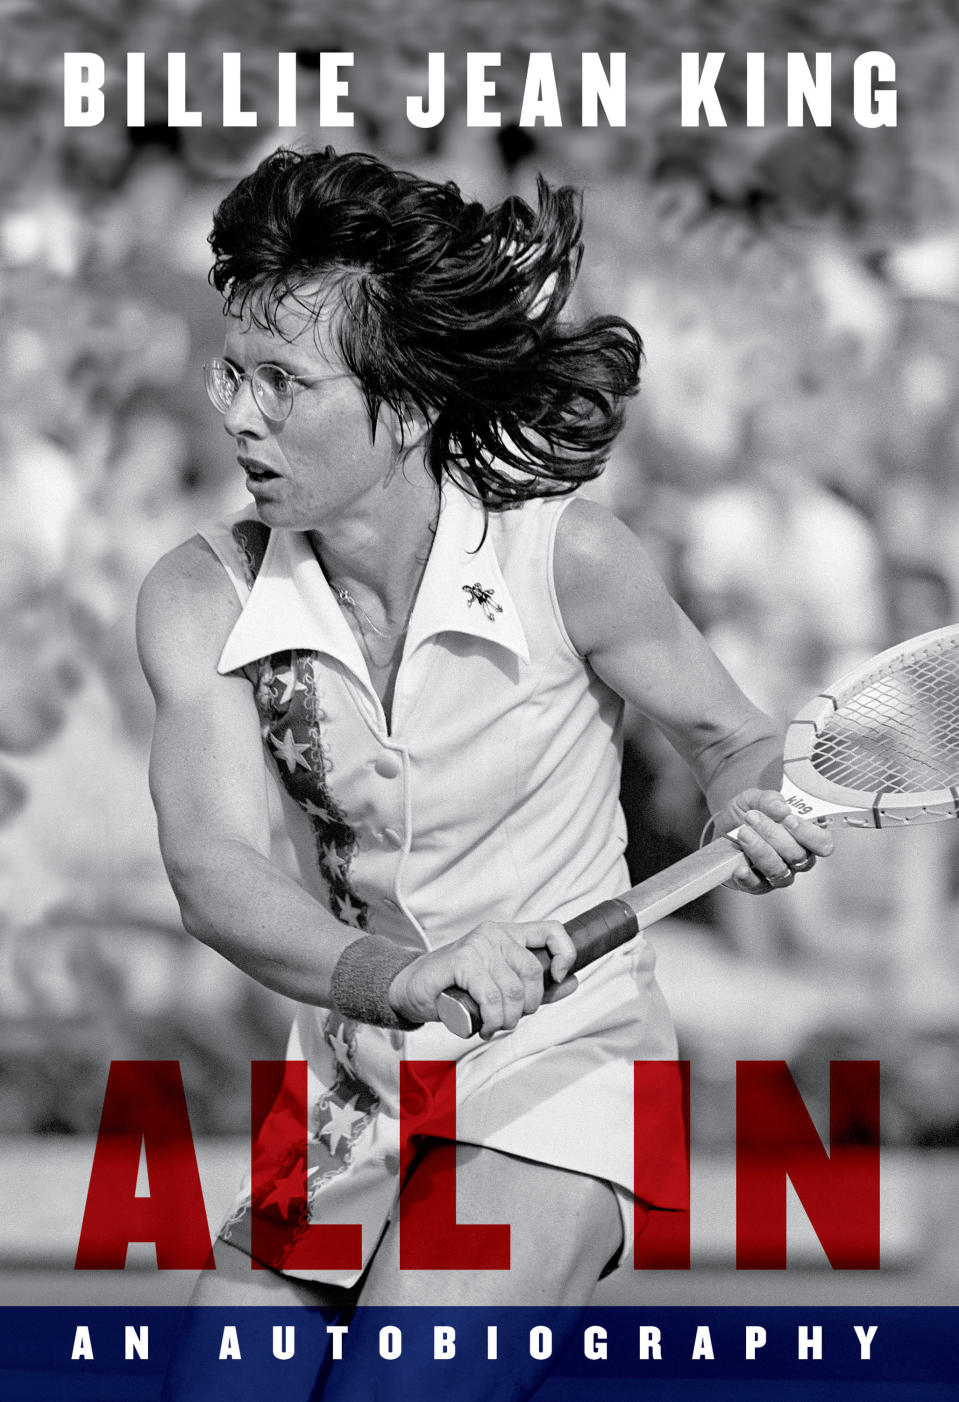 """This cover image provided by Knopf shows """"All In: An Autobiography"""" by Billie Jean King. Alfred A. Knopf announced Thursday, March 4 2021, that the book will be published Aug. 17 and will cover the highlights of King's celebrated and groundbreaking tennis career. (Knopf via AP, left, and AP)"""